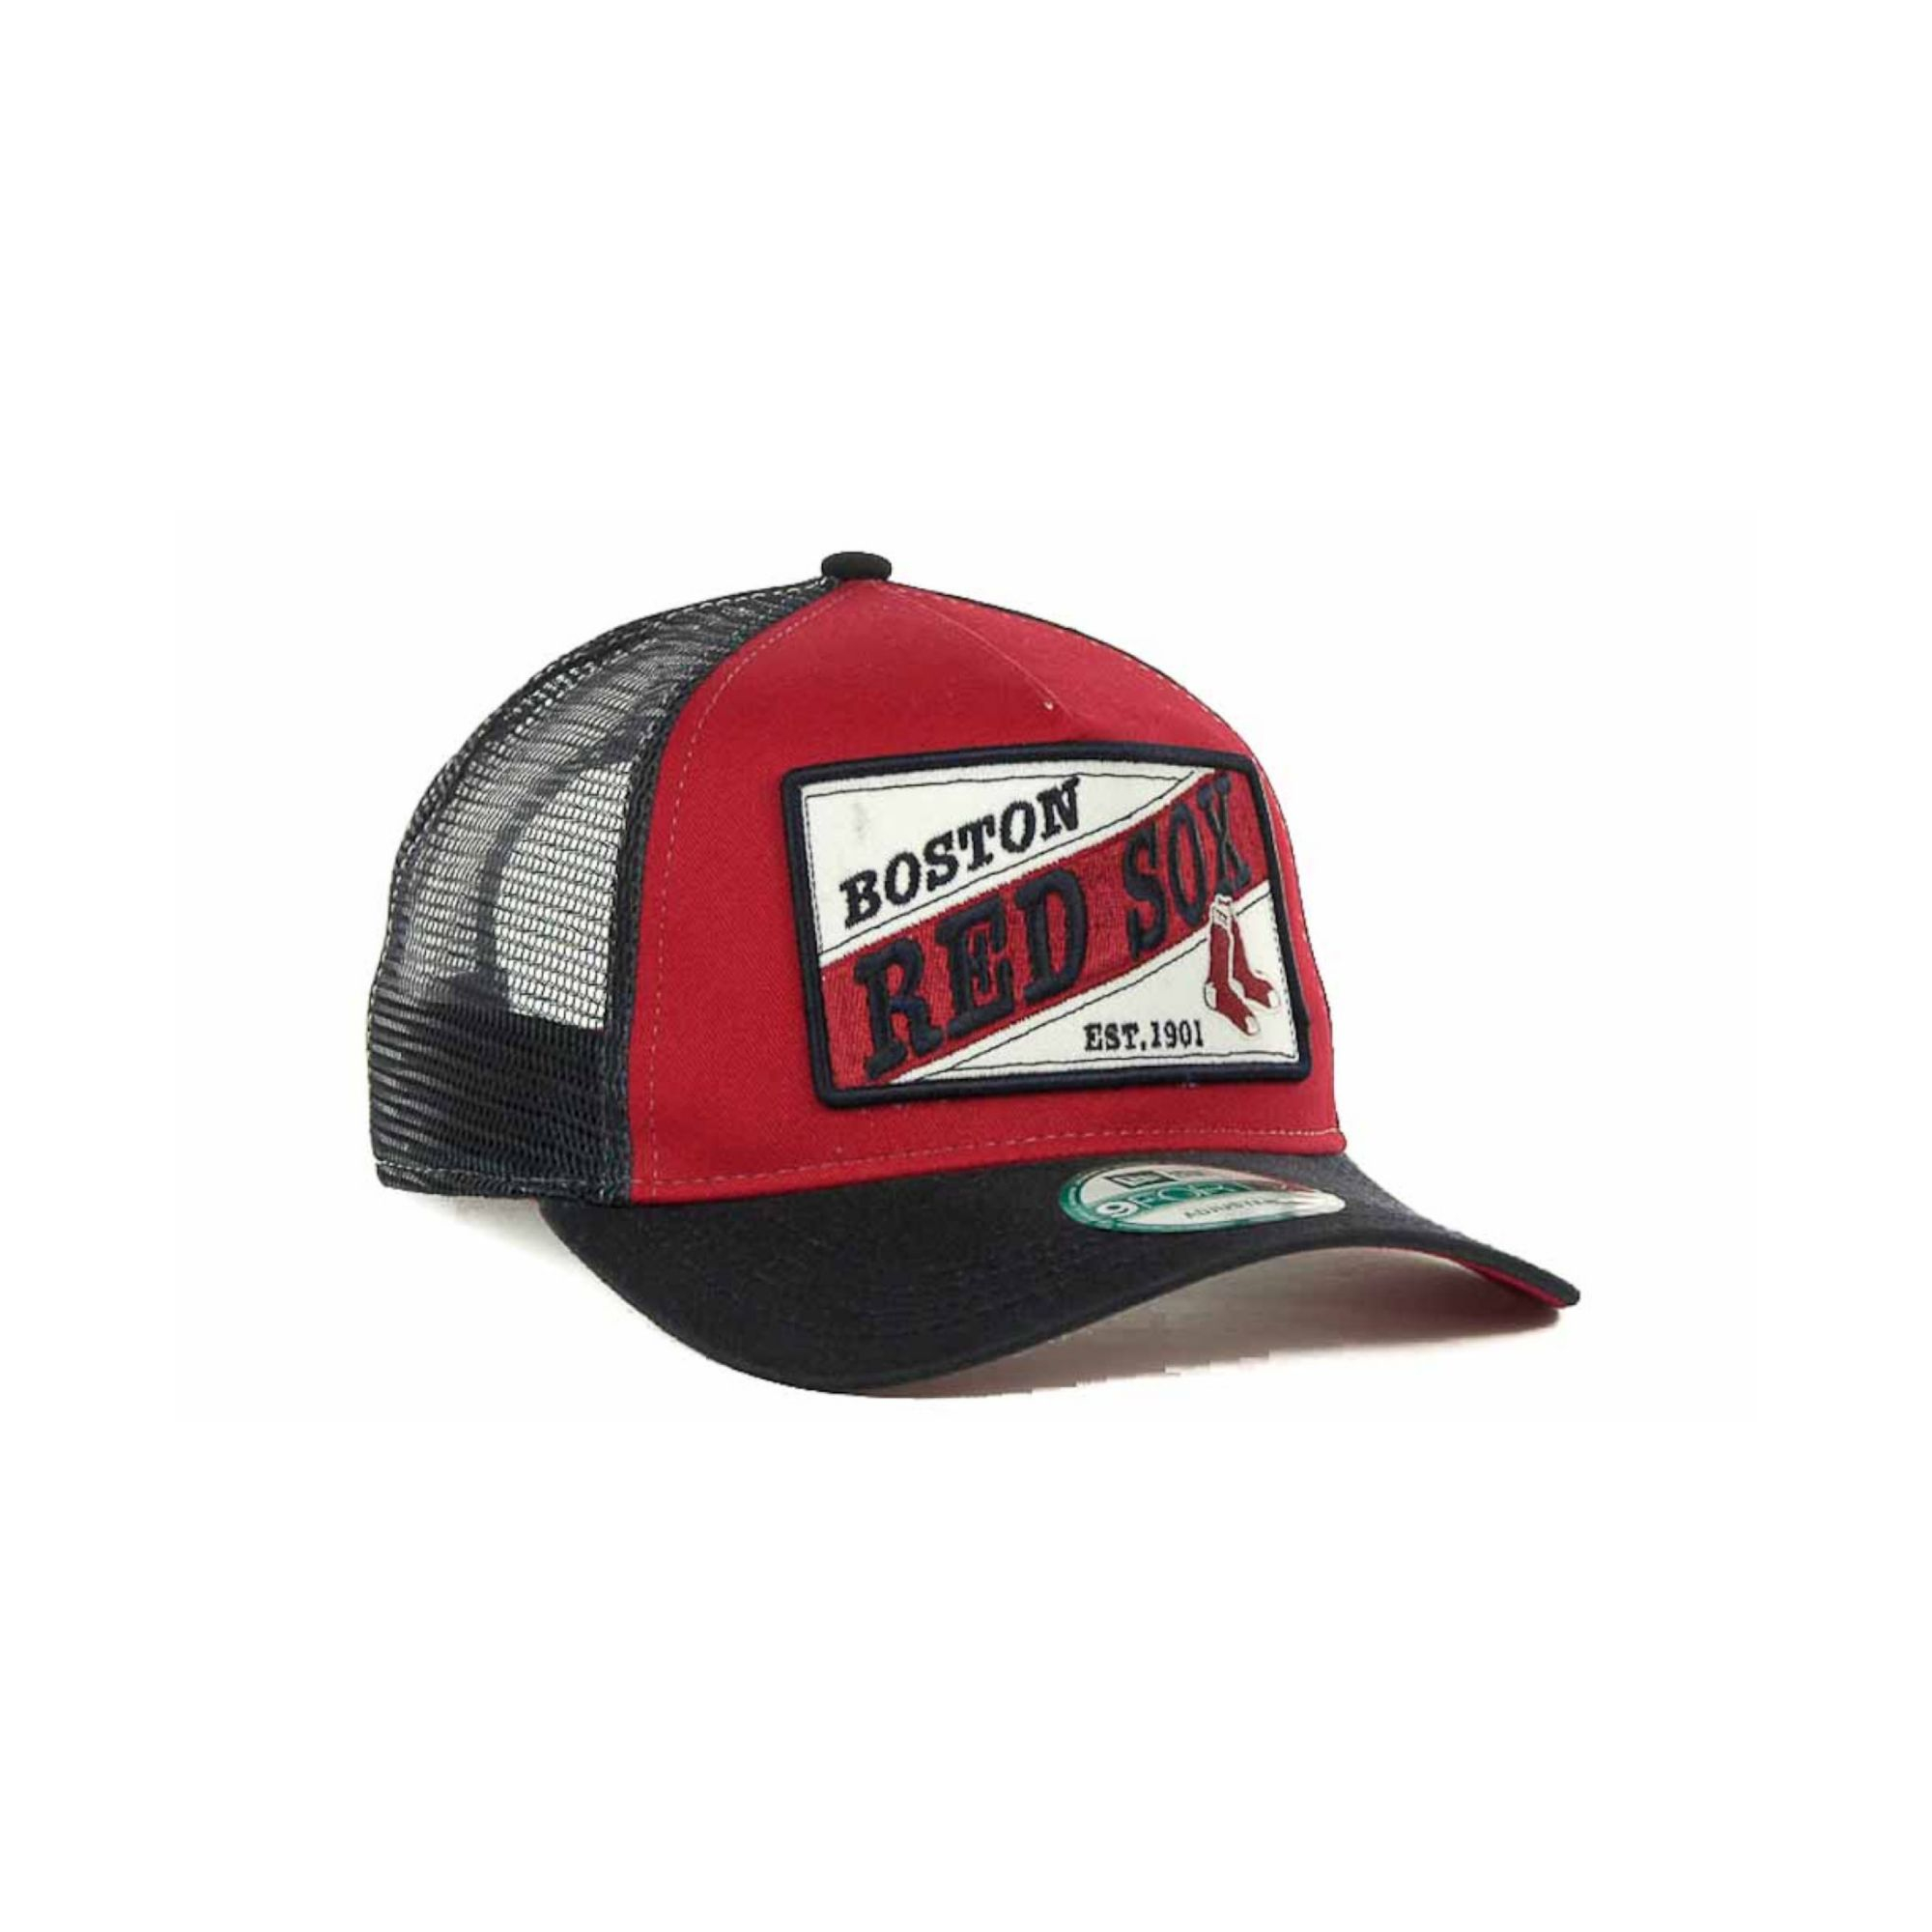 New Era Boston Red Sox 9forty